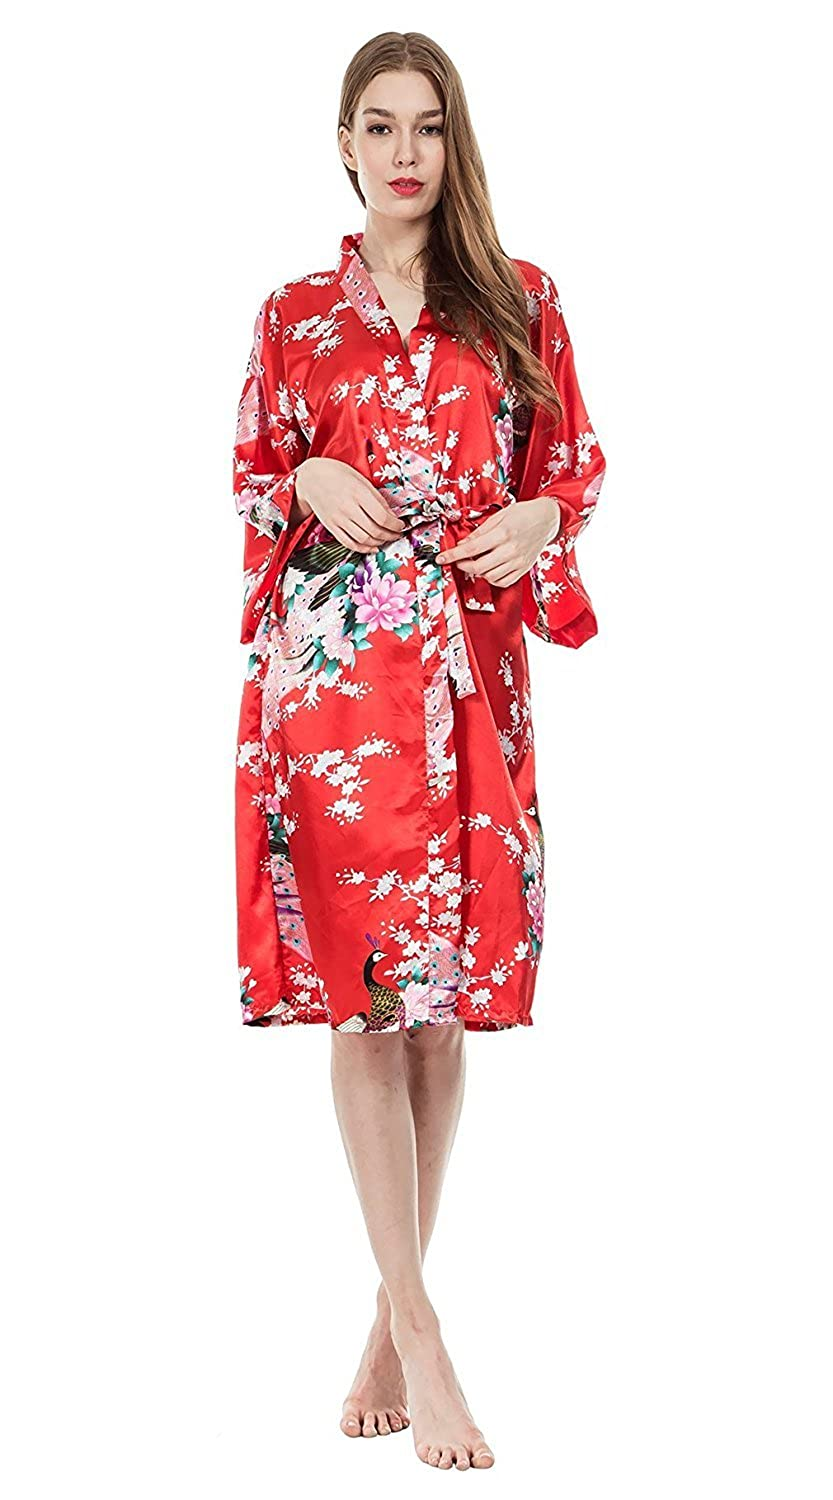 Women's Long Satin Kimono Robe Floral Printed Dressing Gown Bathrobe Nightwear with Belt